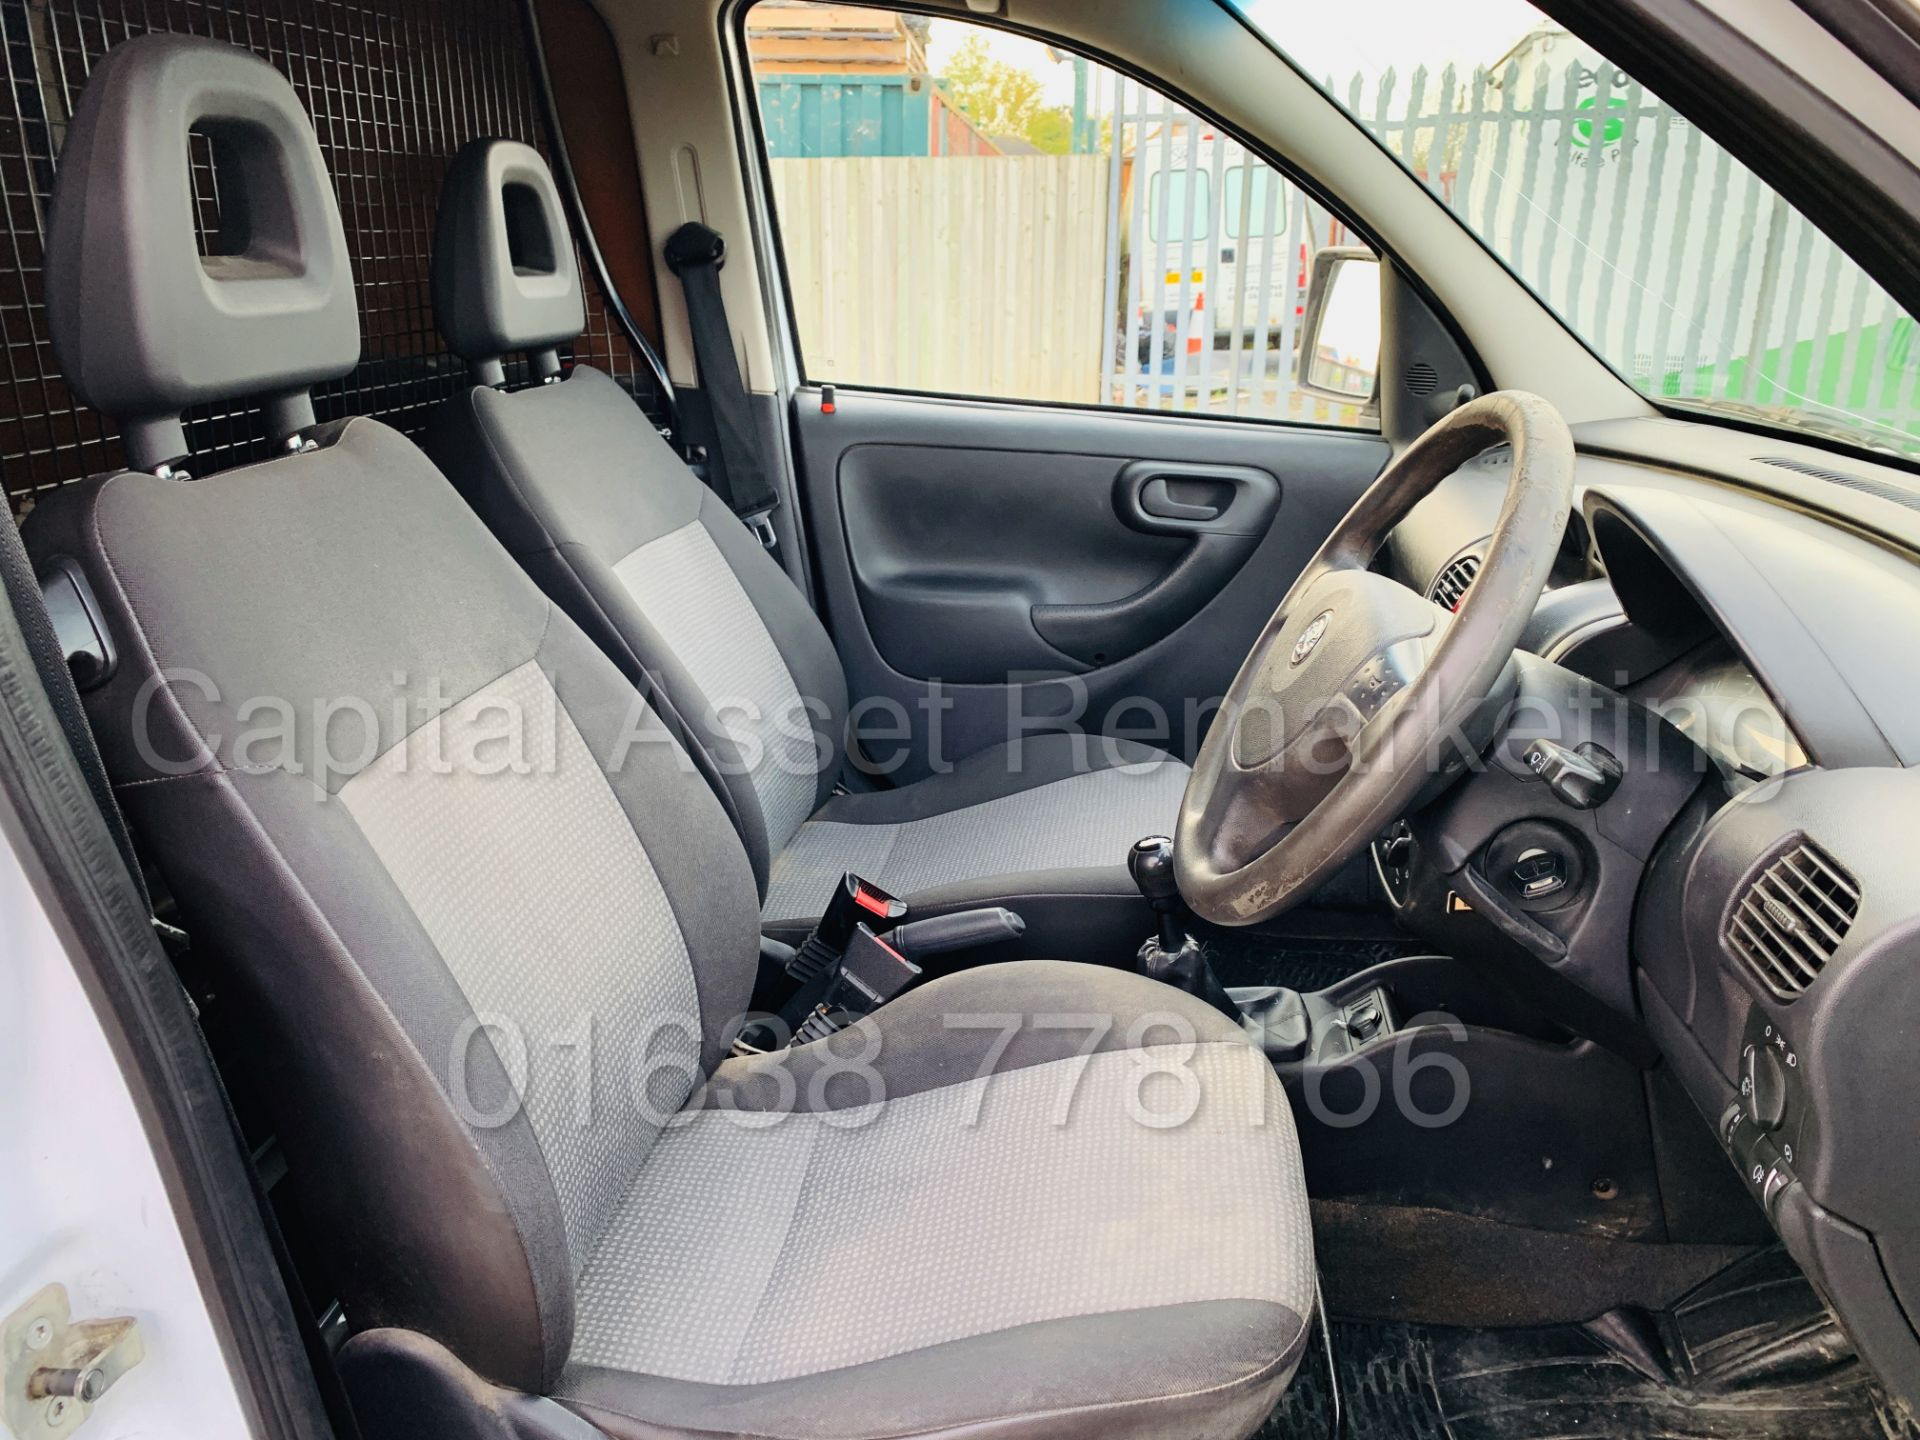 Los 23 - (On Sale) VAUXHALL COMBO 2000 CDTI 16V *LCV - PANEL VAN* (60 REG) '1.7 CDTI - 100 BHP' (NO VAT)